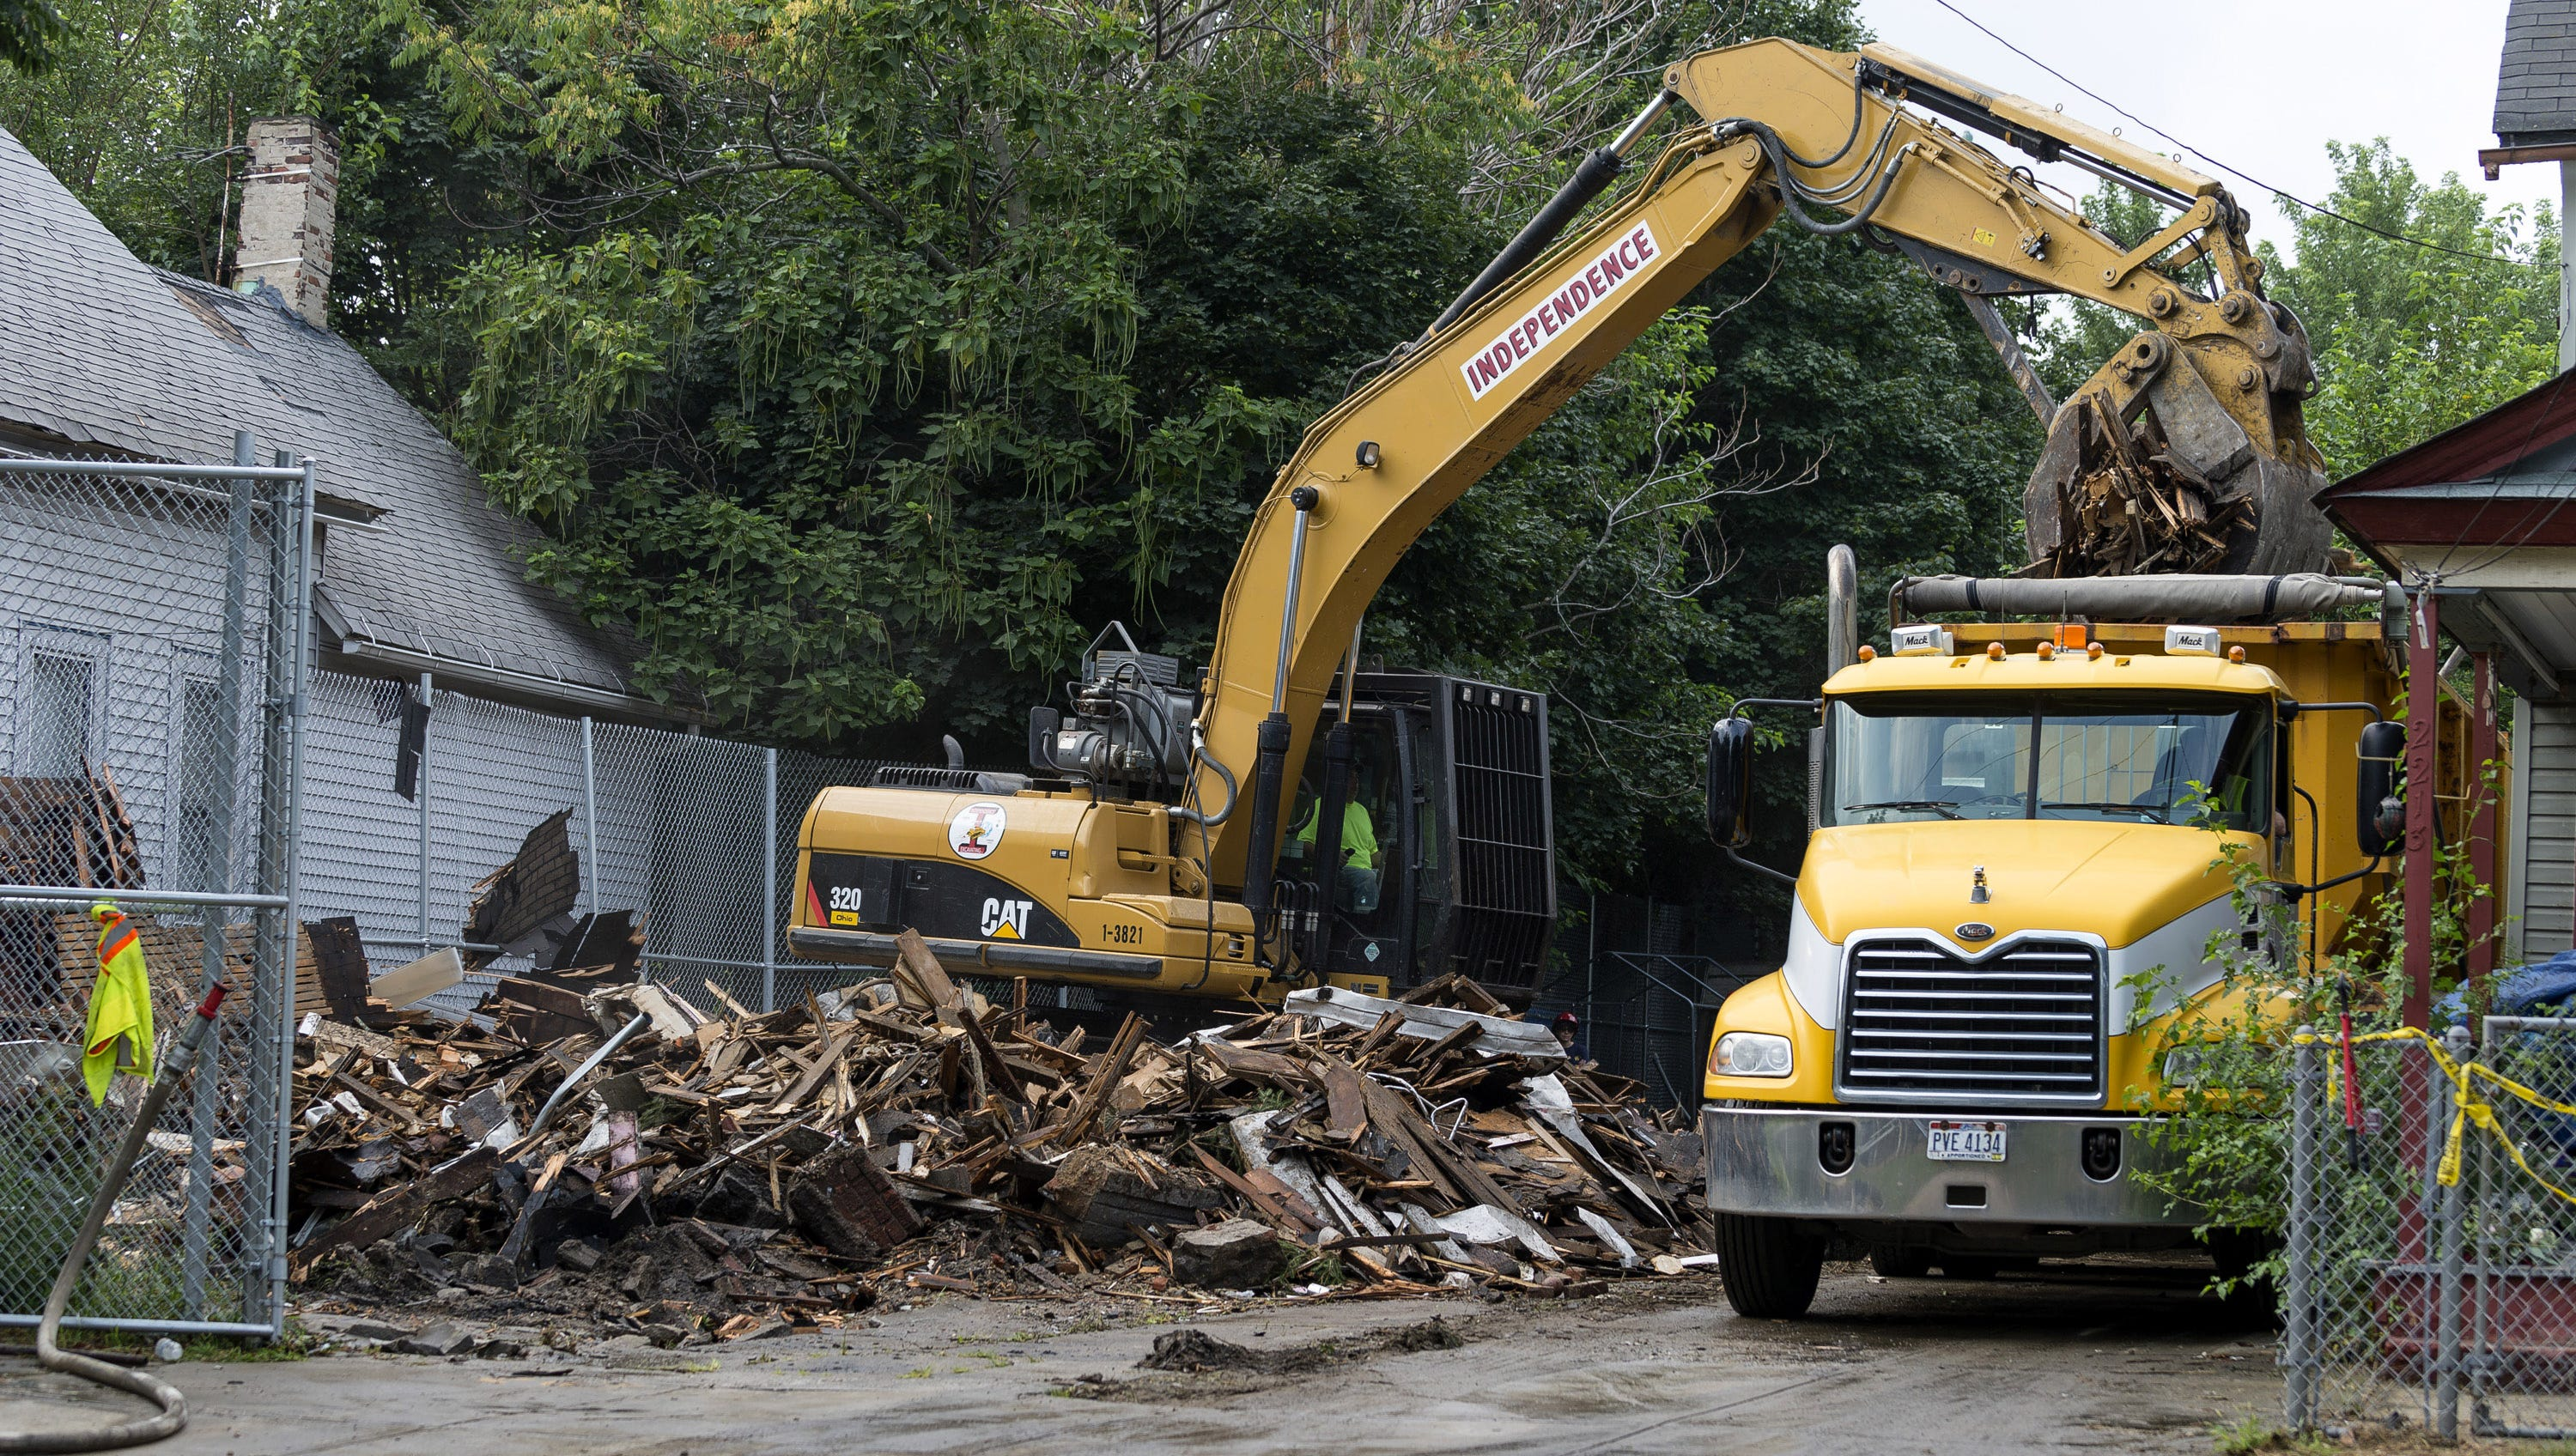 Castro's home is torn down.